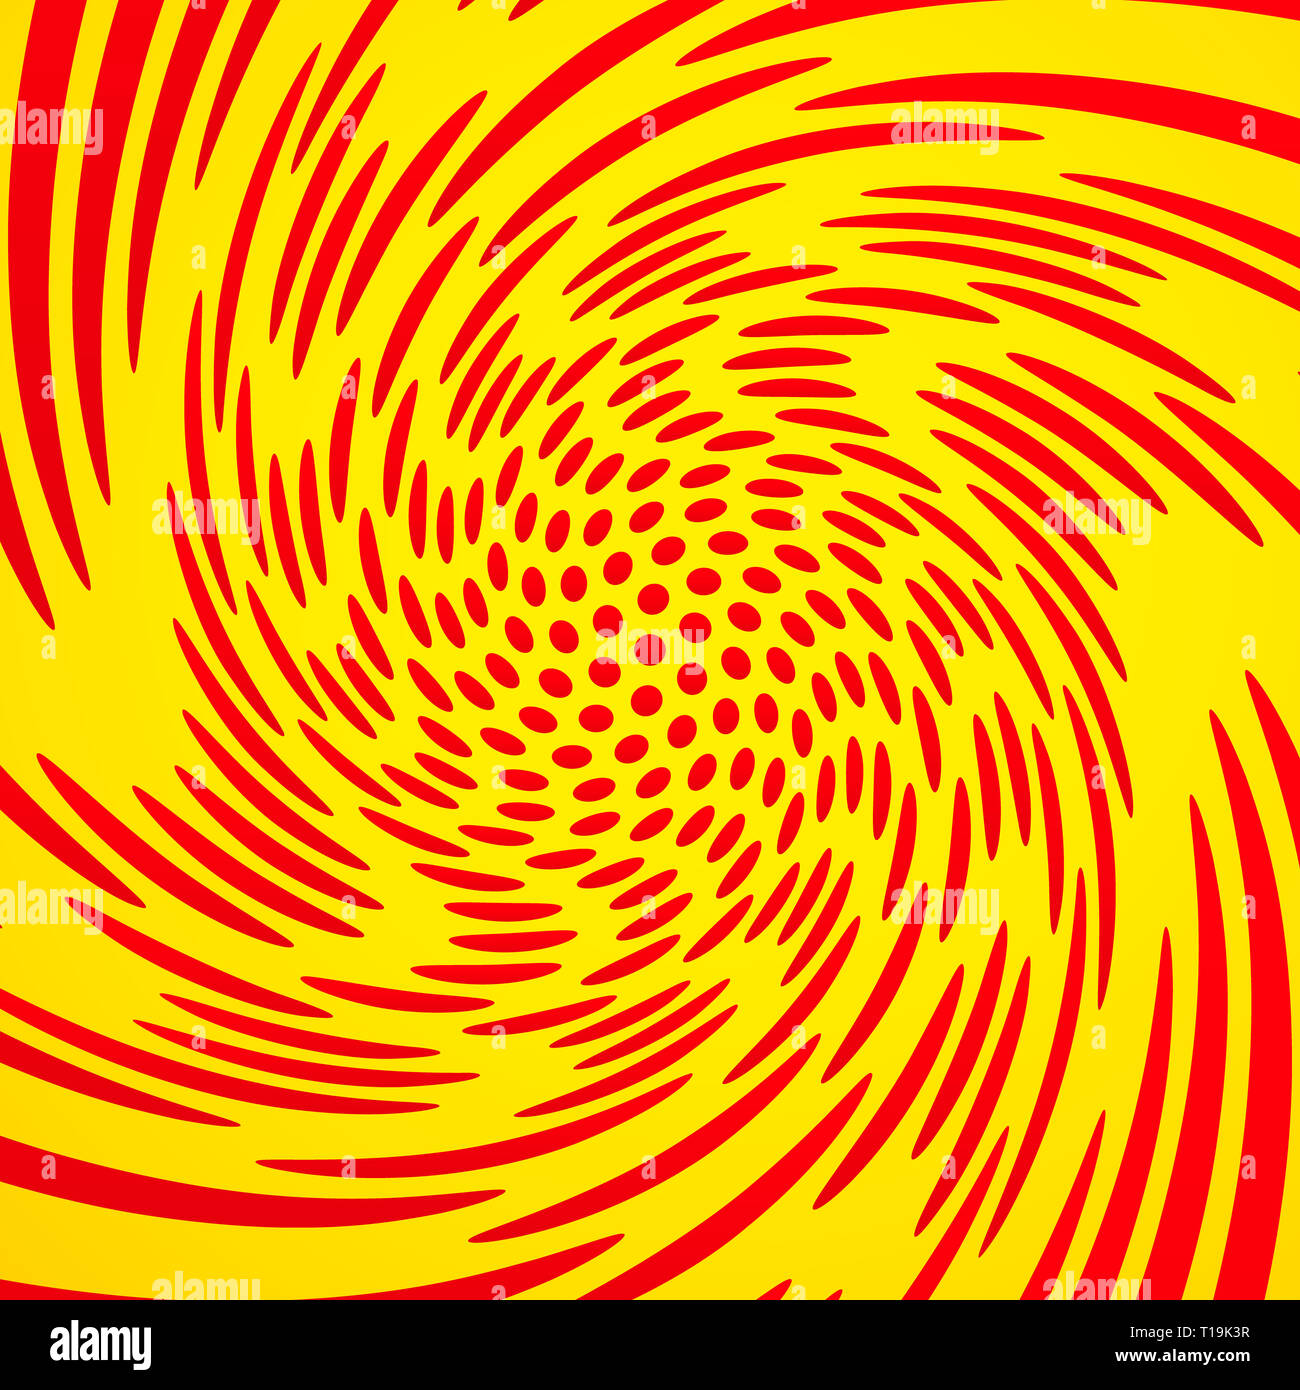 Mesh of dots with strong whirling, rotation effect. Malformed, rotated graphics. Vector. - Stock Image